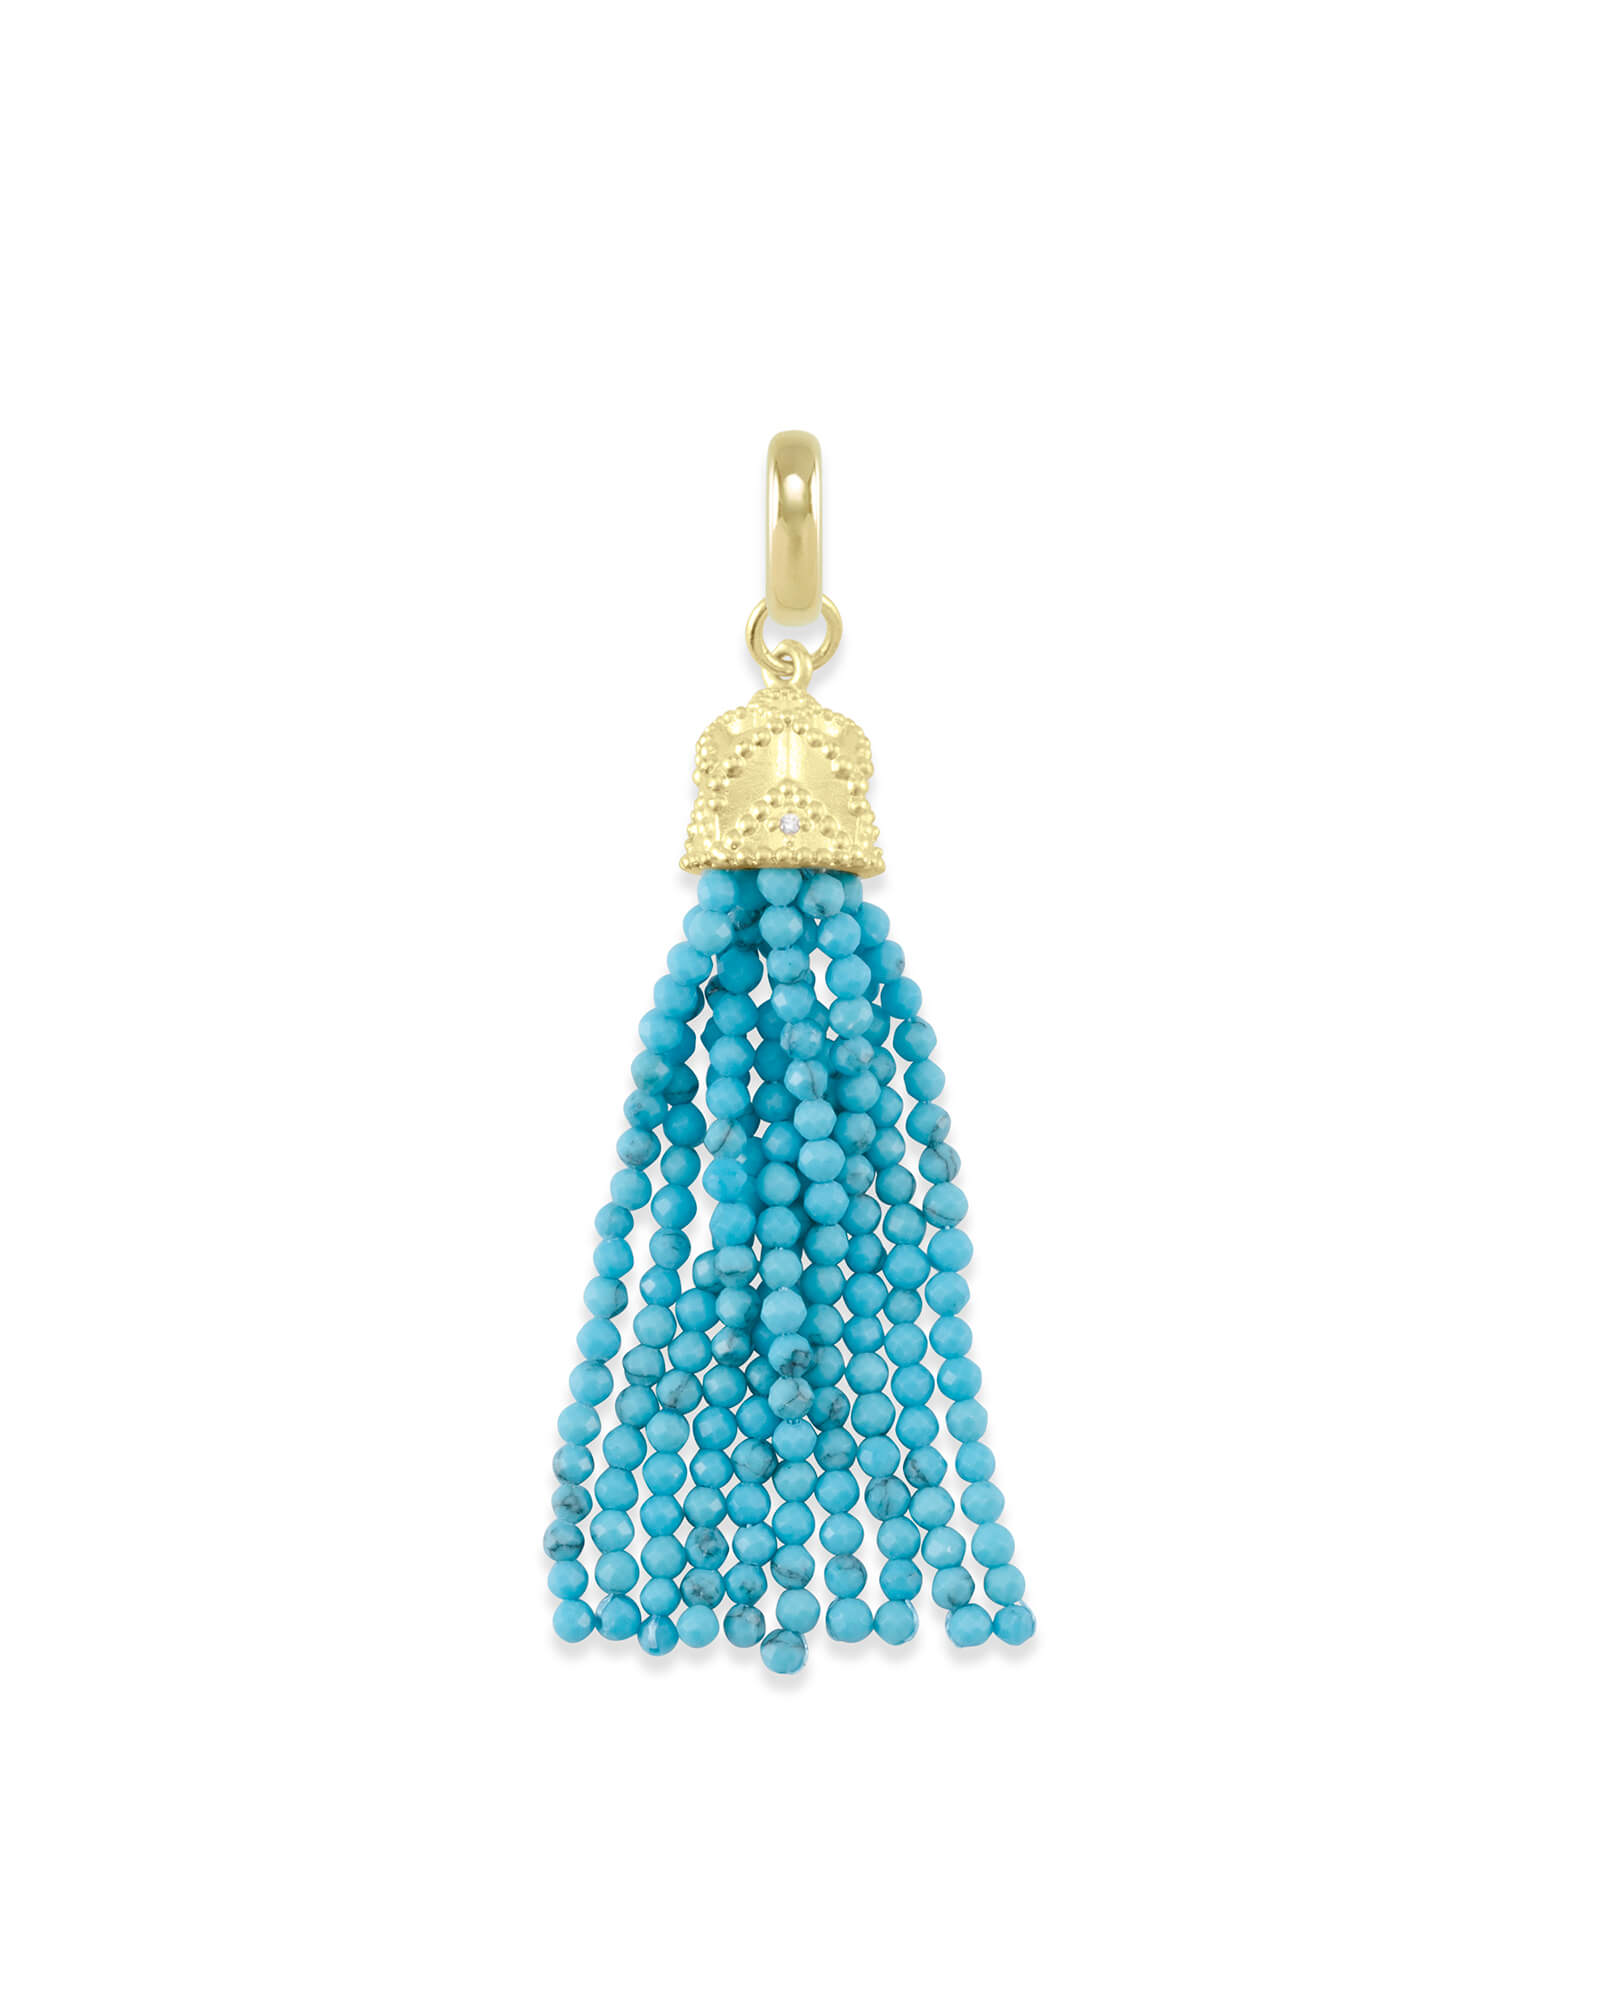 Beaded Gold Tassel Charm in Turquoise Magnesite